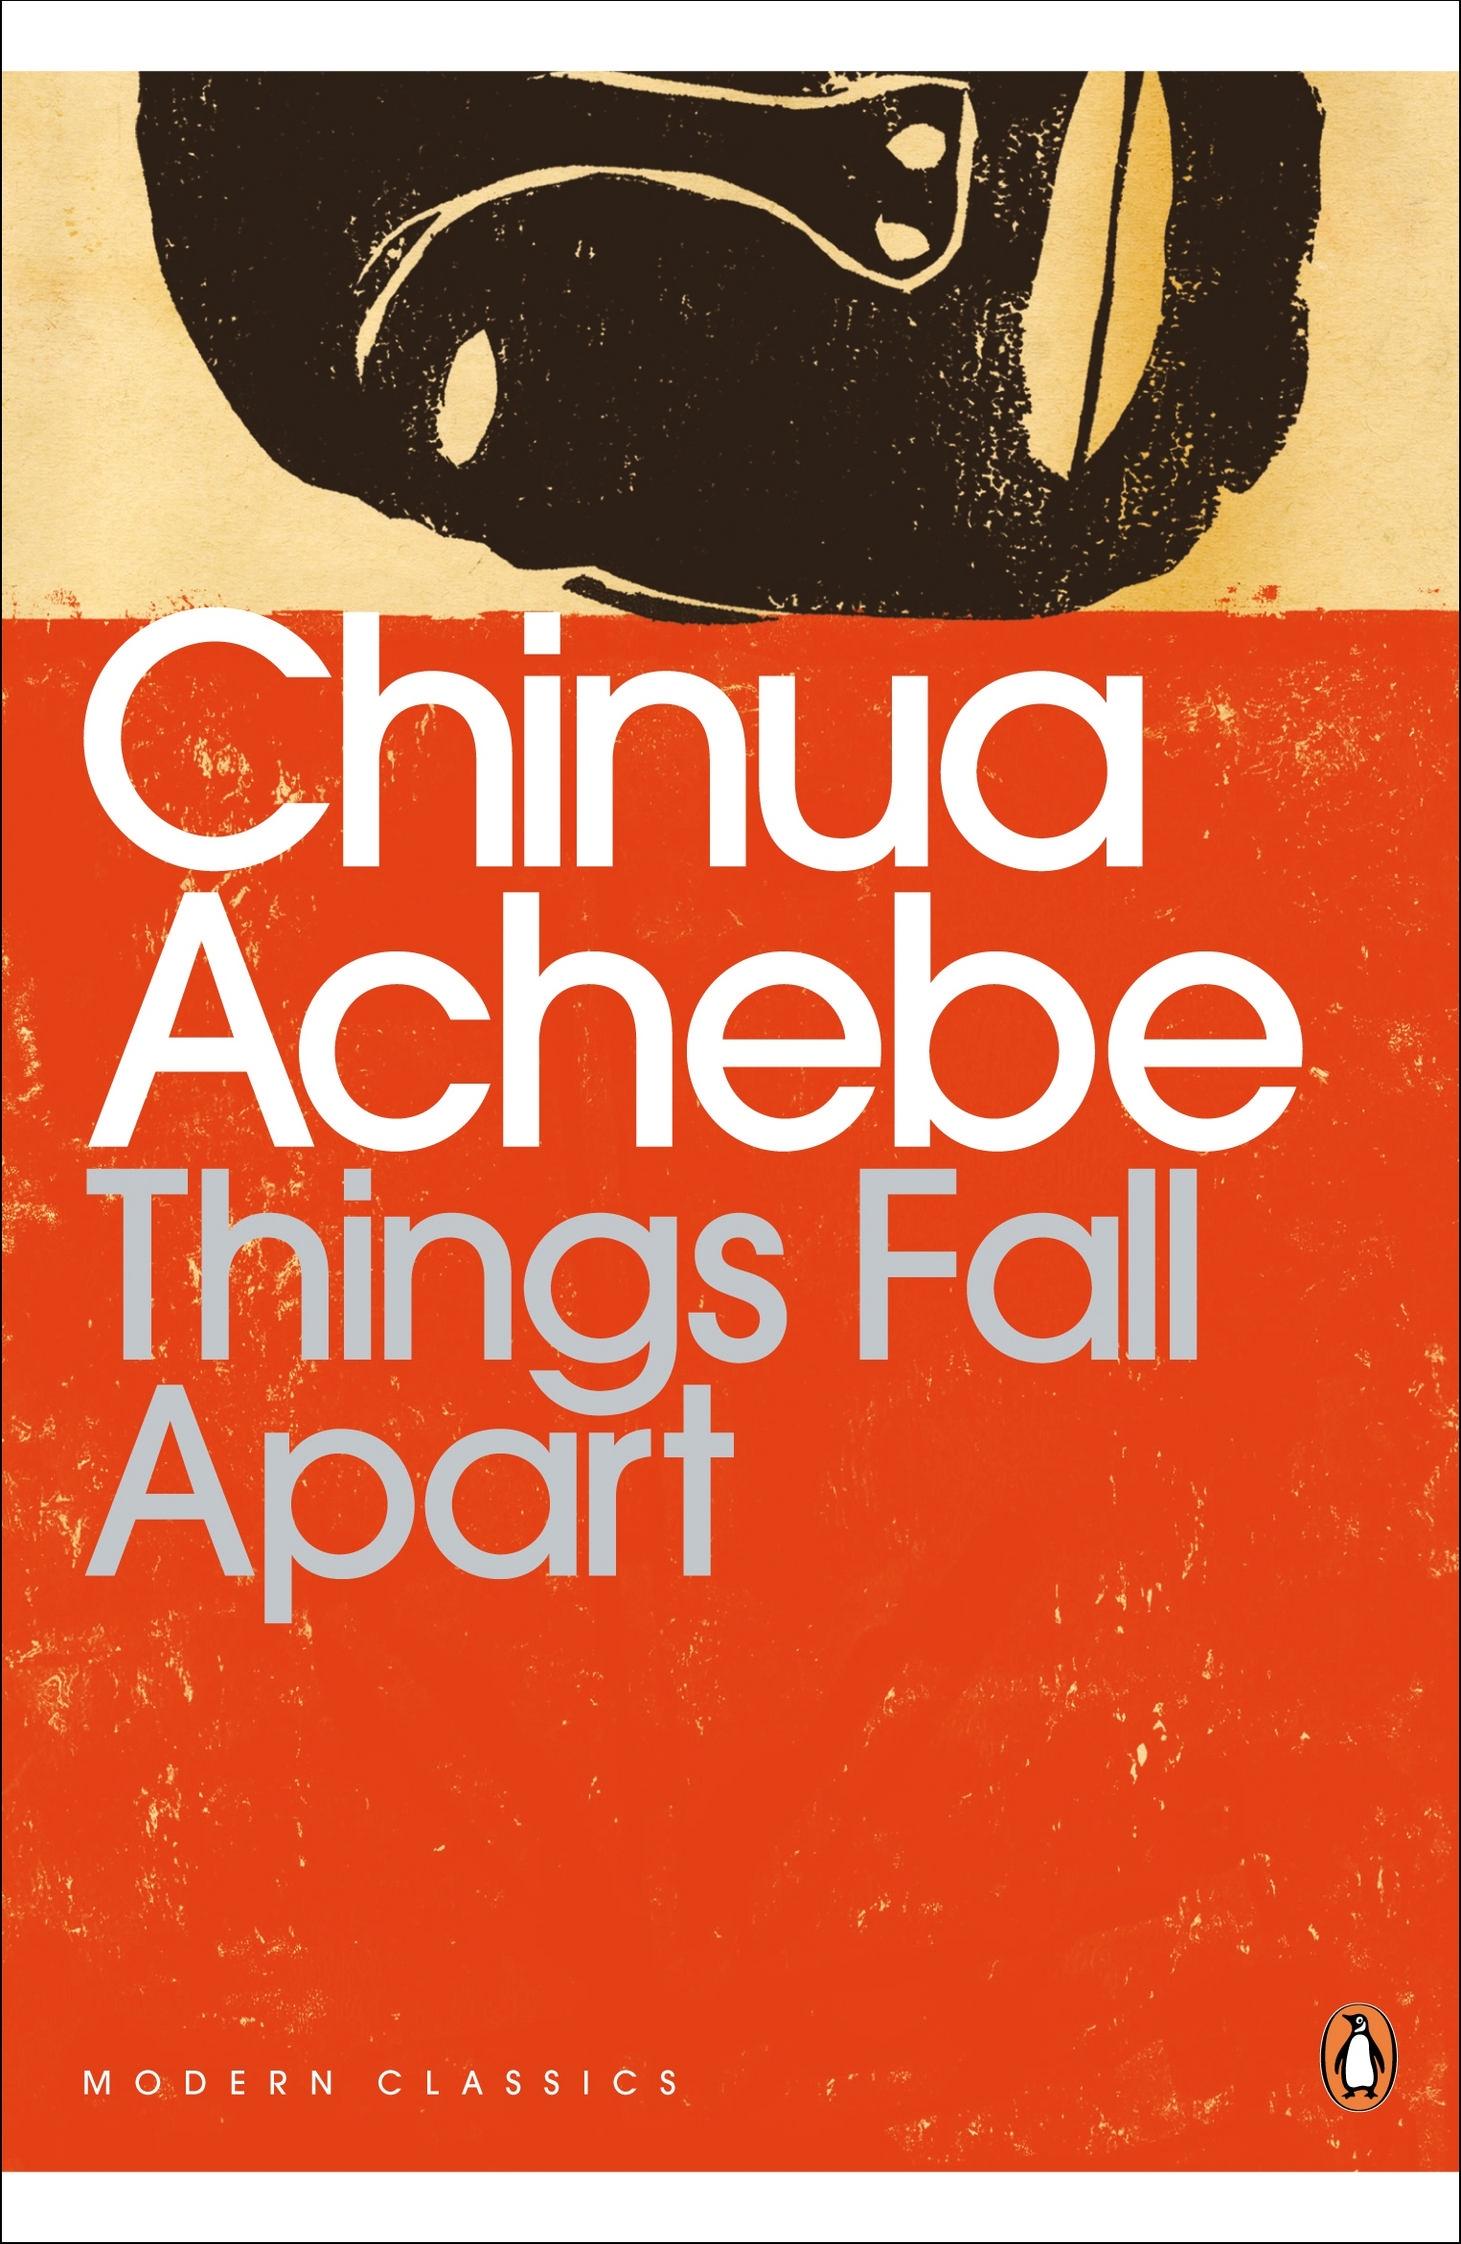 The book things fall apart by chinua achebe?